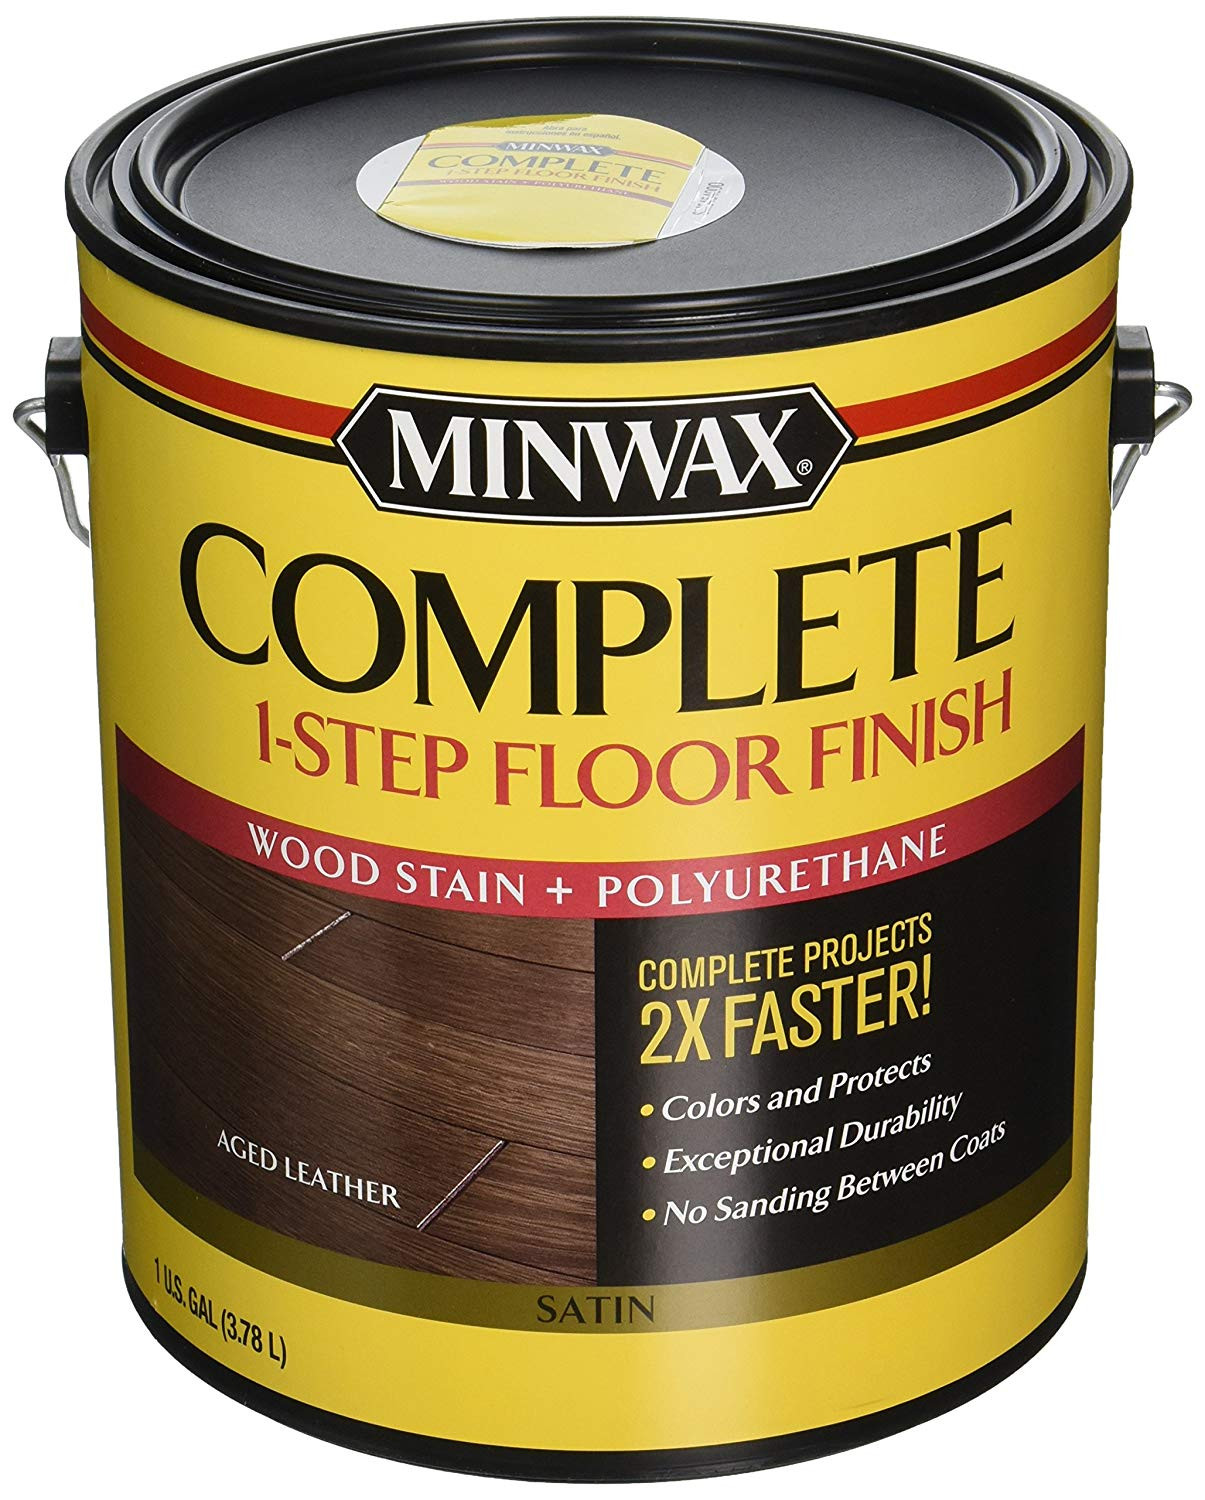 staining hardwood floors darker cost of minwax 672050000 67205 1g satin aged leather complete 1 step floor within minwax 672050000 67205 1g satin aged leather complete 1 step floor finish amazon com